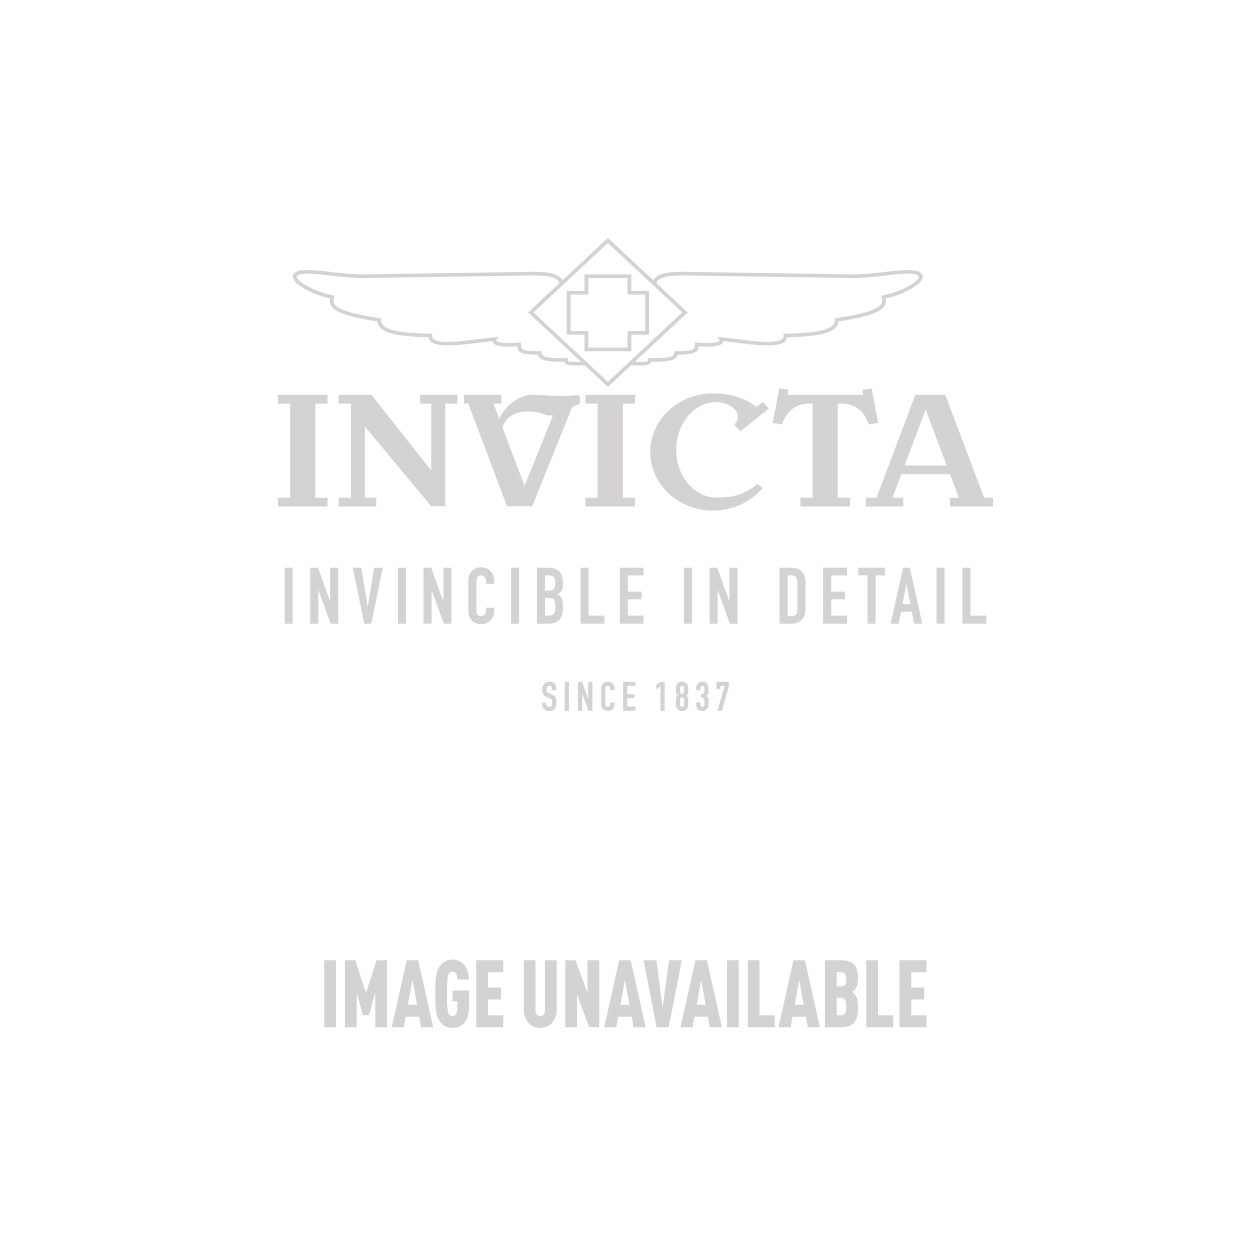 Invicta Sea Spider Mechanical Watch - Stainless Steel case with Steel, Black tone Stainless Steel, Polyurethane band - Model 1254